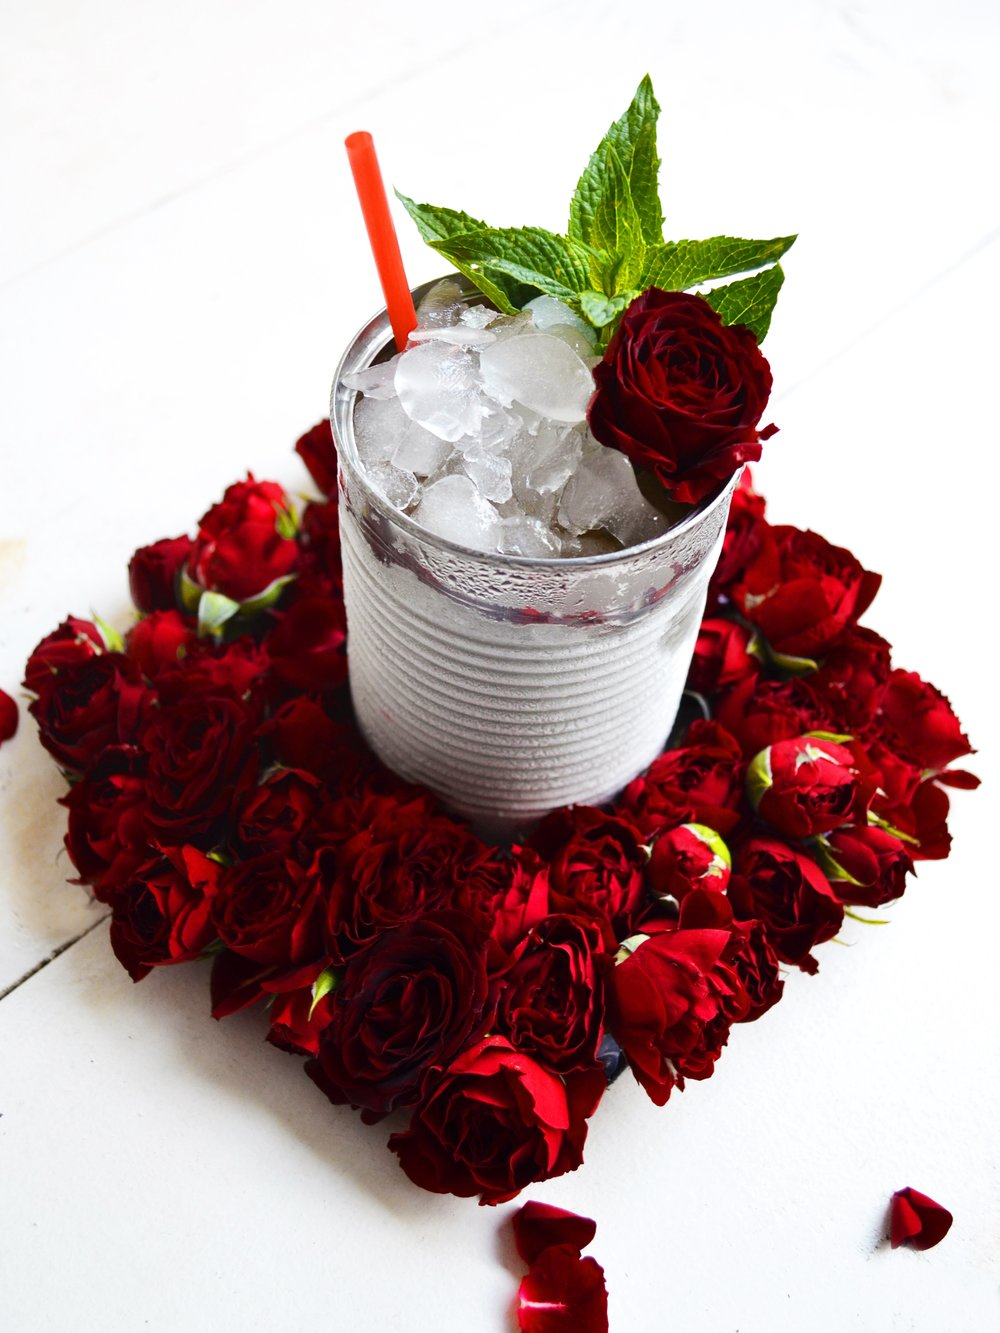 Mint Rose Petal Julep | drinkingwithchickens.com